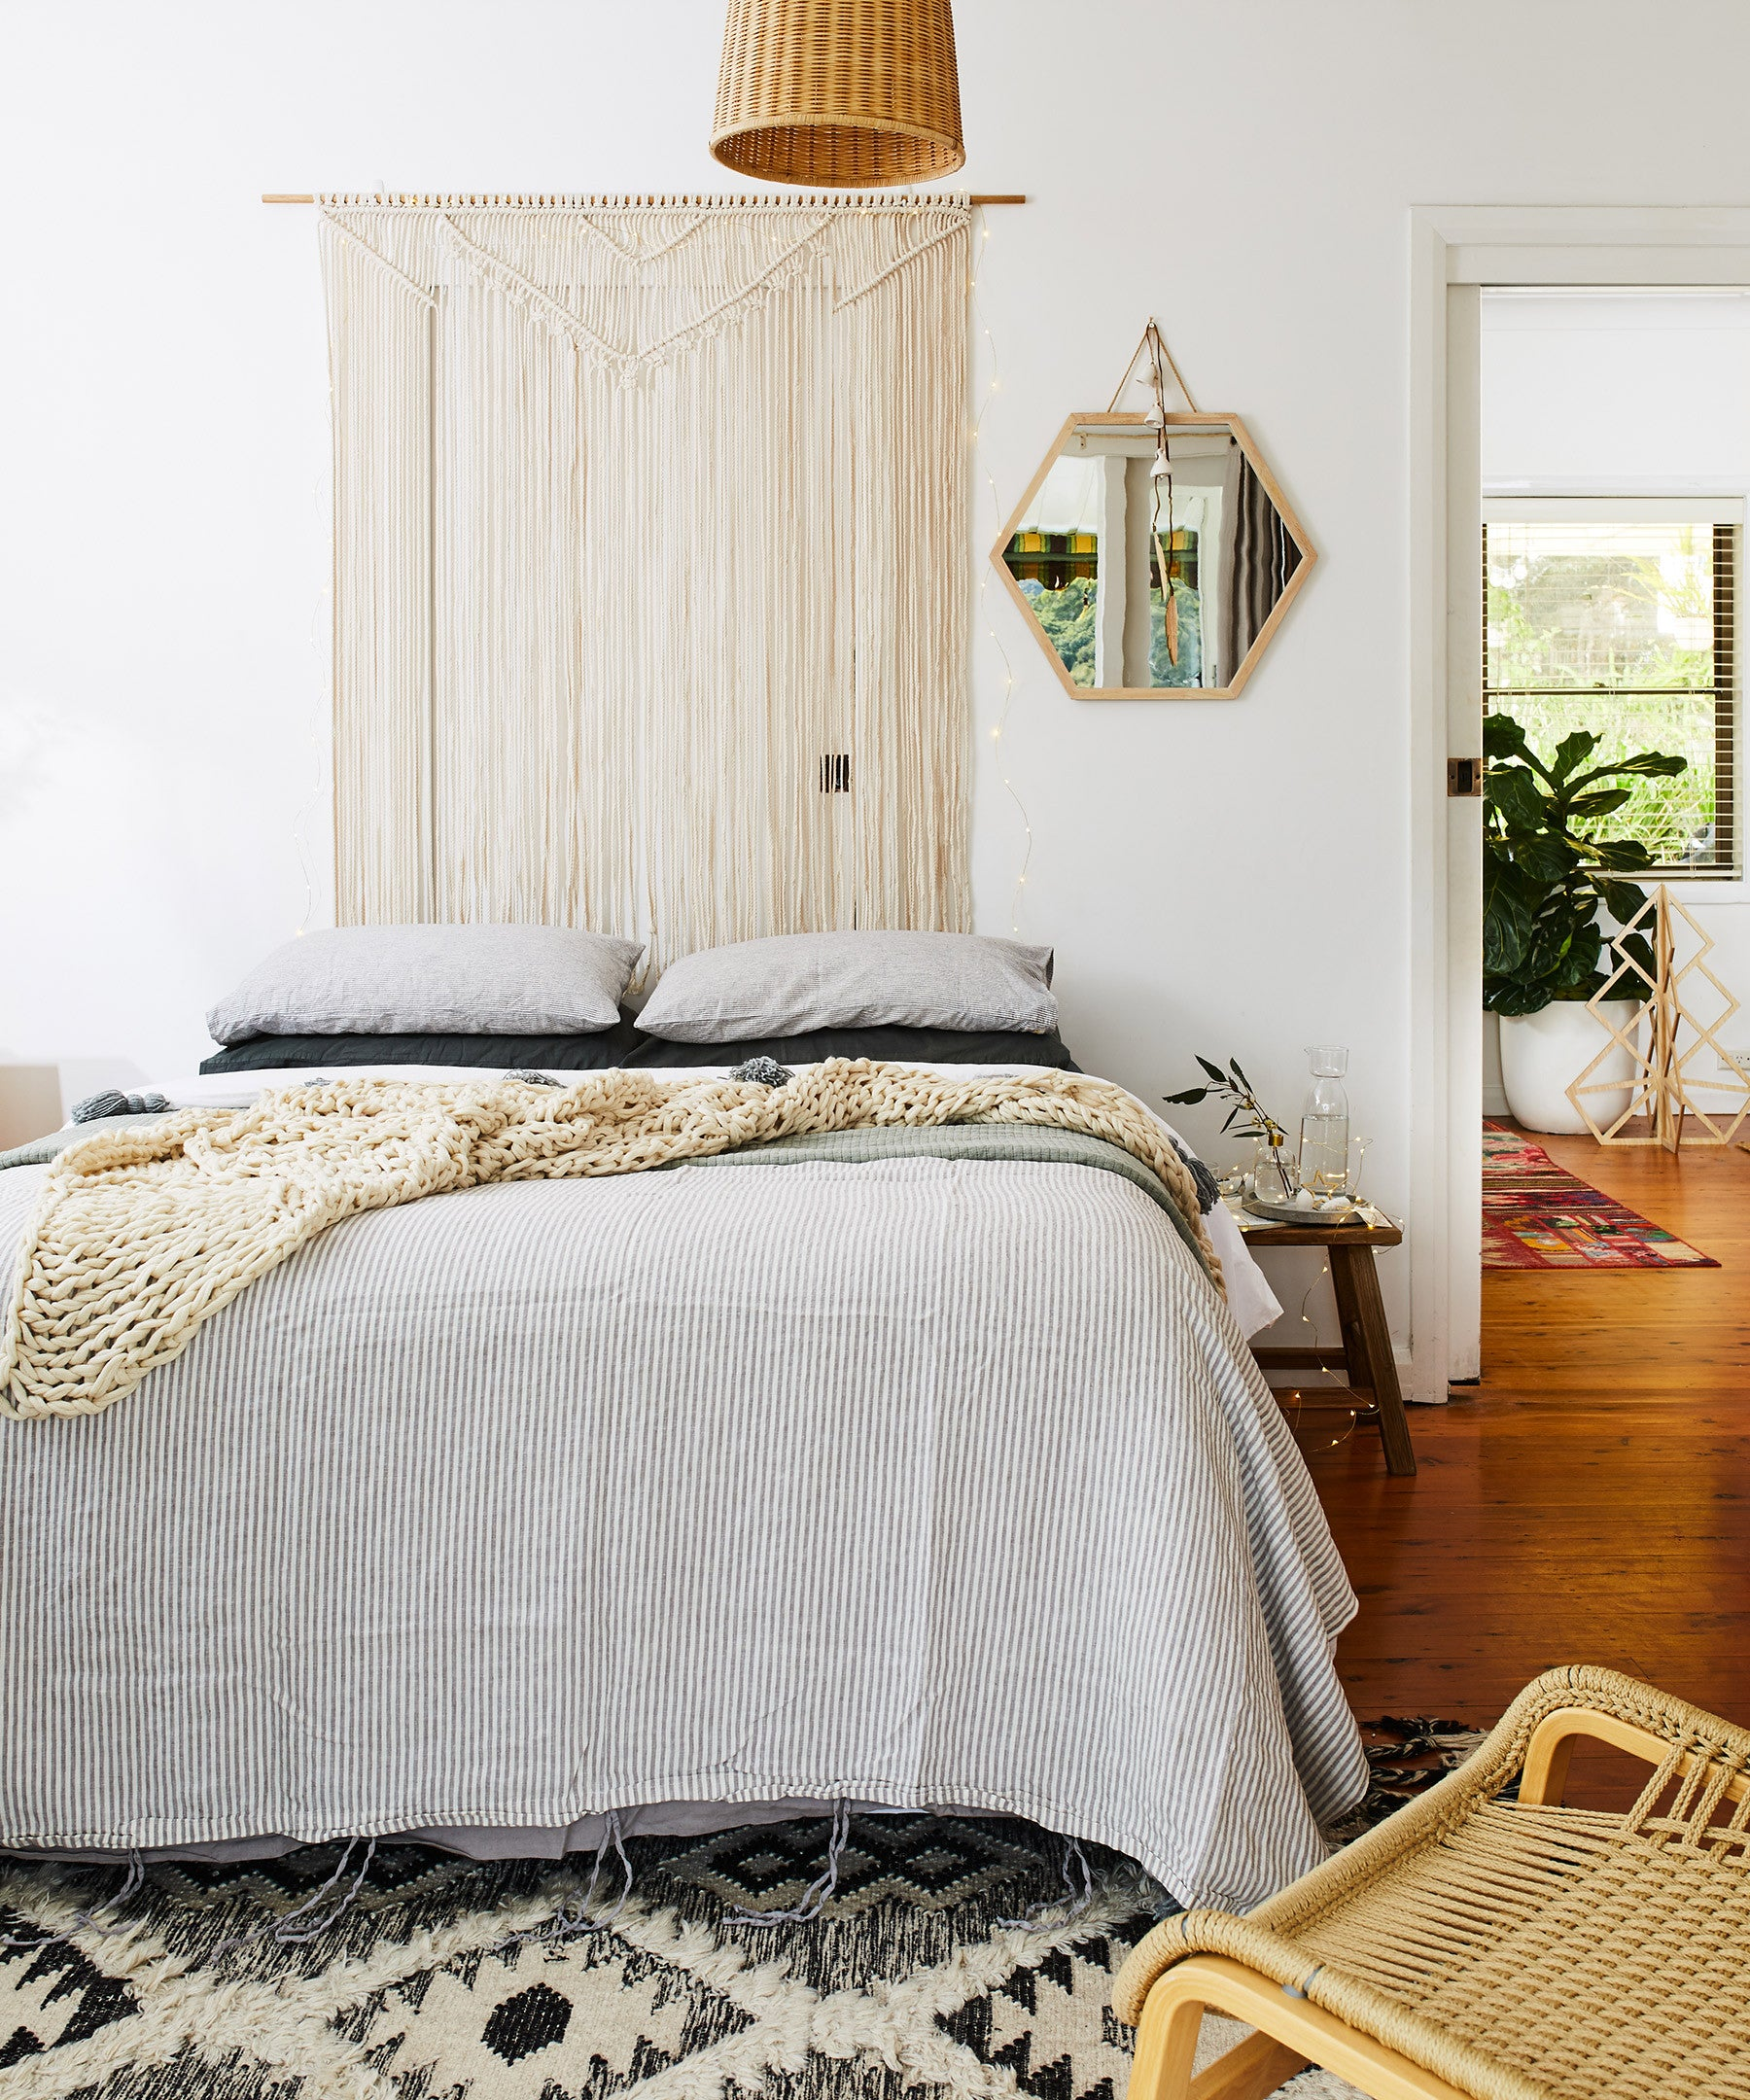 jessi eve interior styling oyster bay